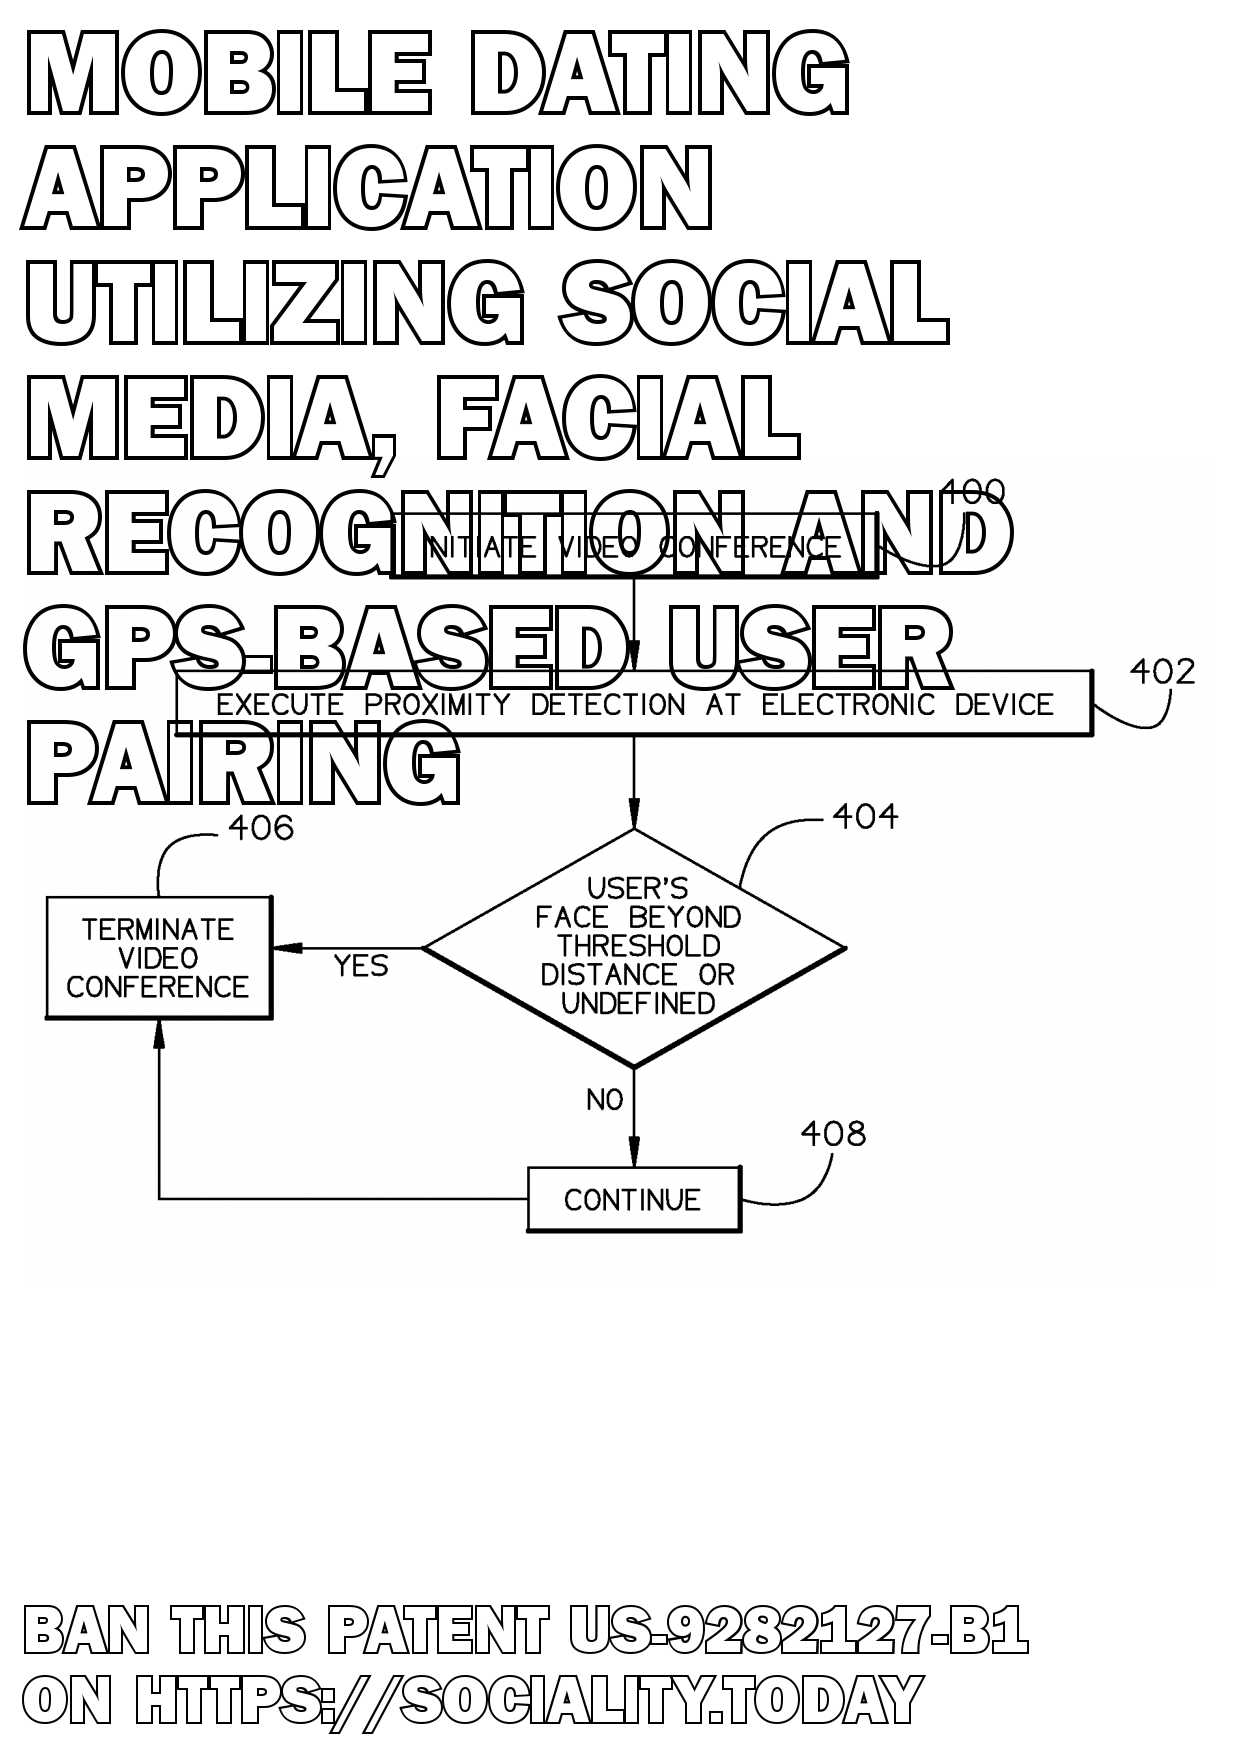 Mobile dating application utilizing social media, facial recognition and GPS-based user pairing  - US-9282127-B1